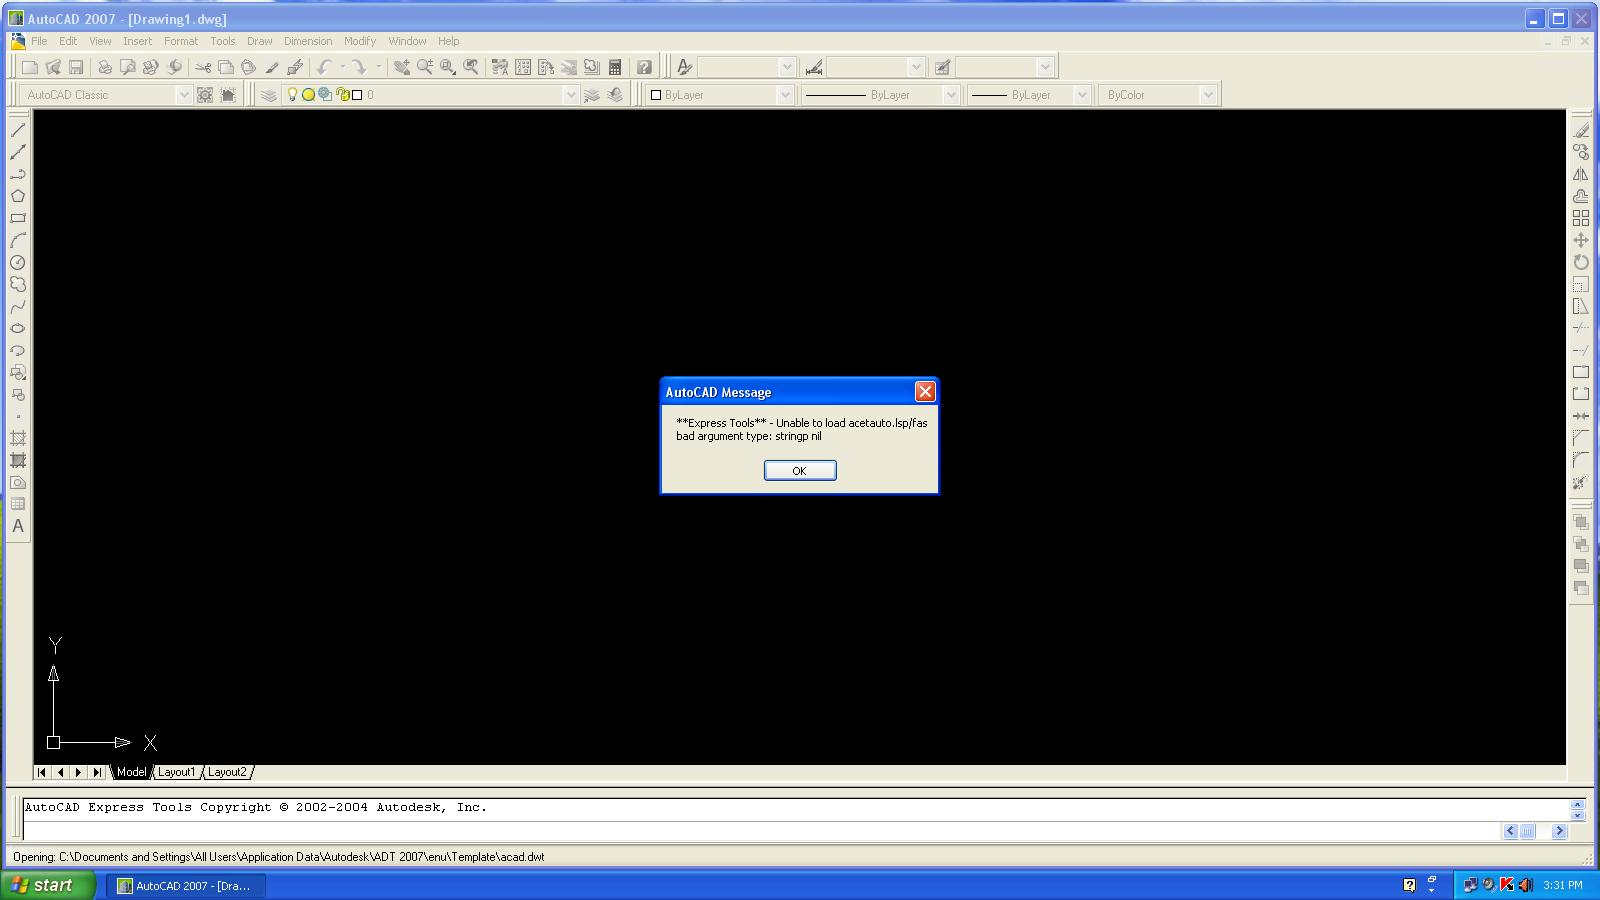 Express Tools** - Unable to load acetauto lsp/fas bad - Autodesk